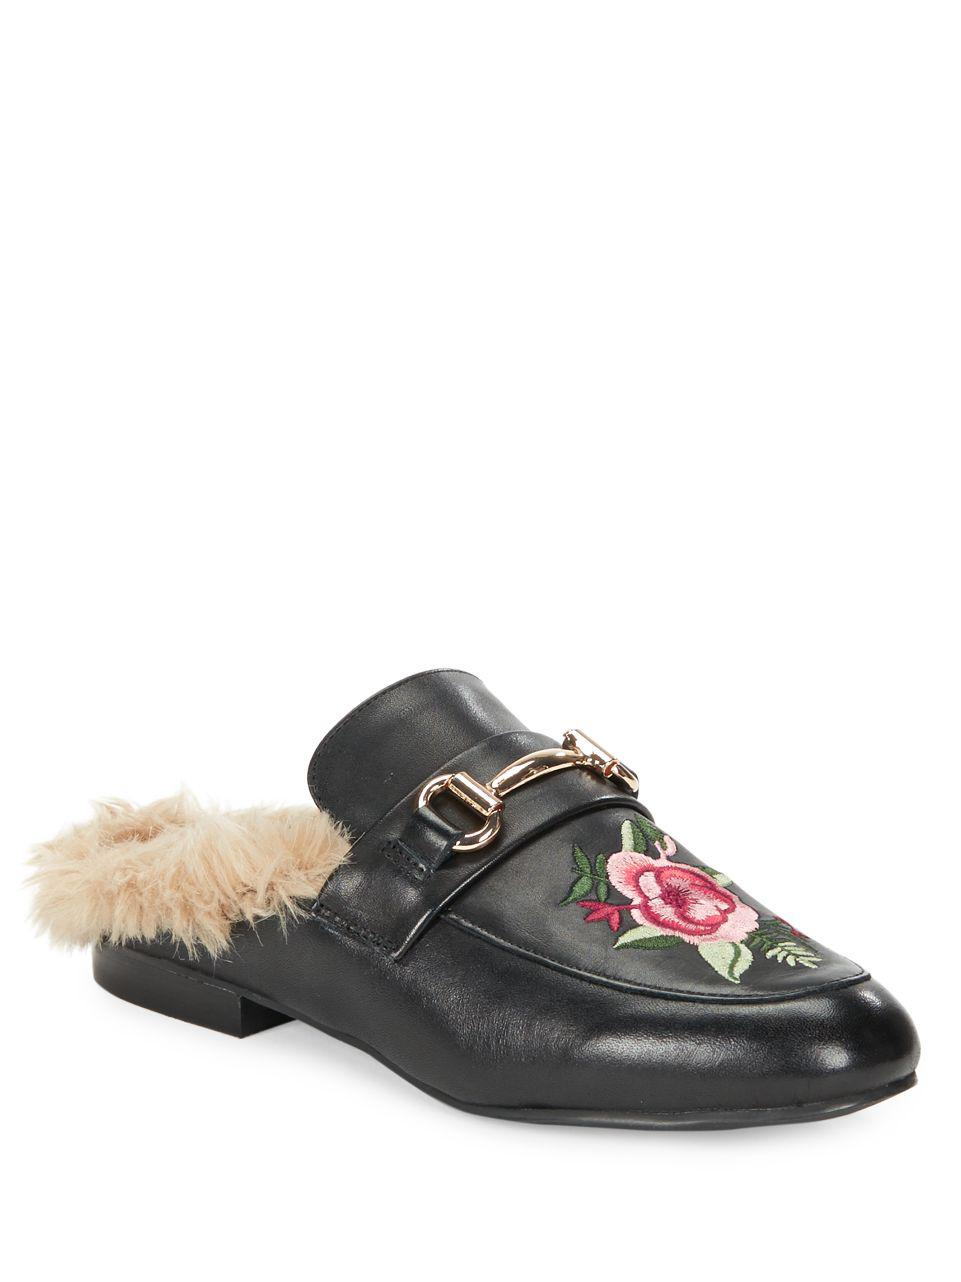 30e57f1a91d Lyst - Steve Madden Jill Embroidred Faux Fur Slide Loafers in Black